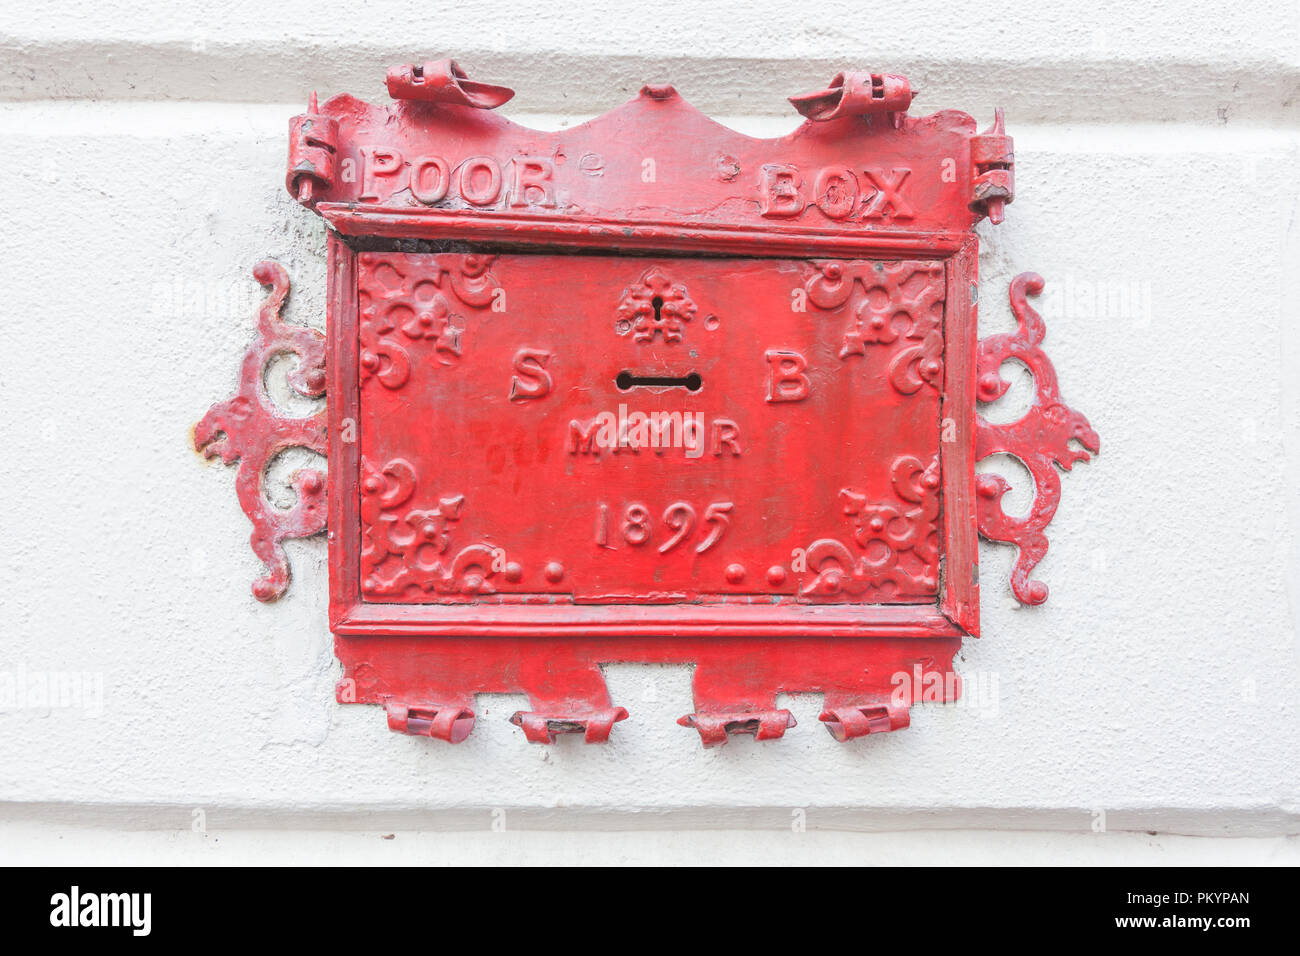 Poor Box ,Old donations box for the poor, Barnstable, Devon, England, United Kingdom. - Stock Image